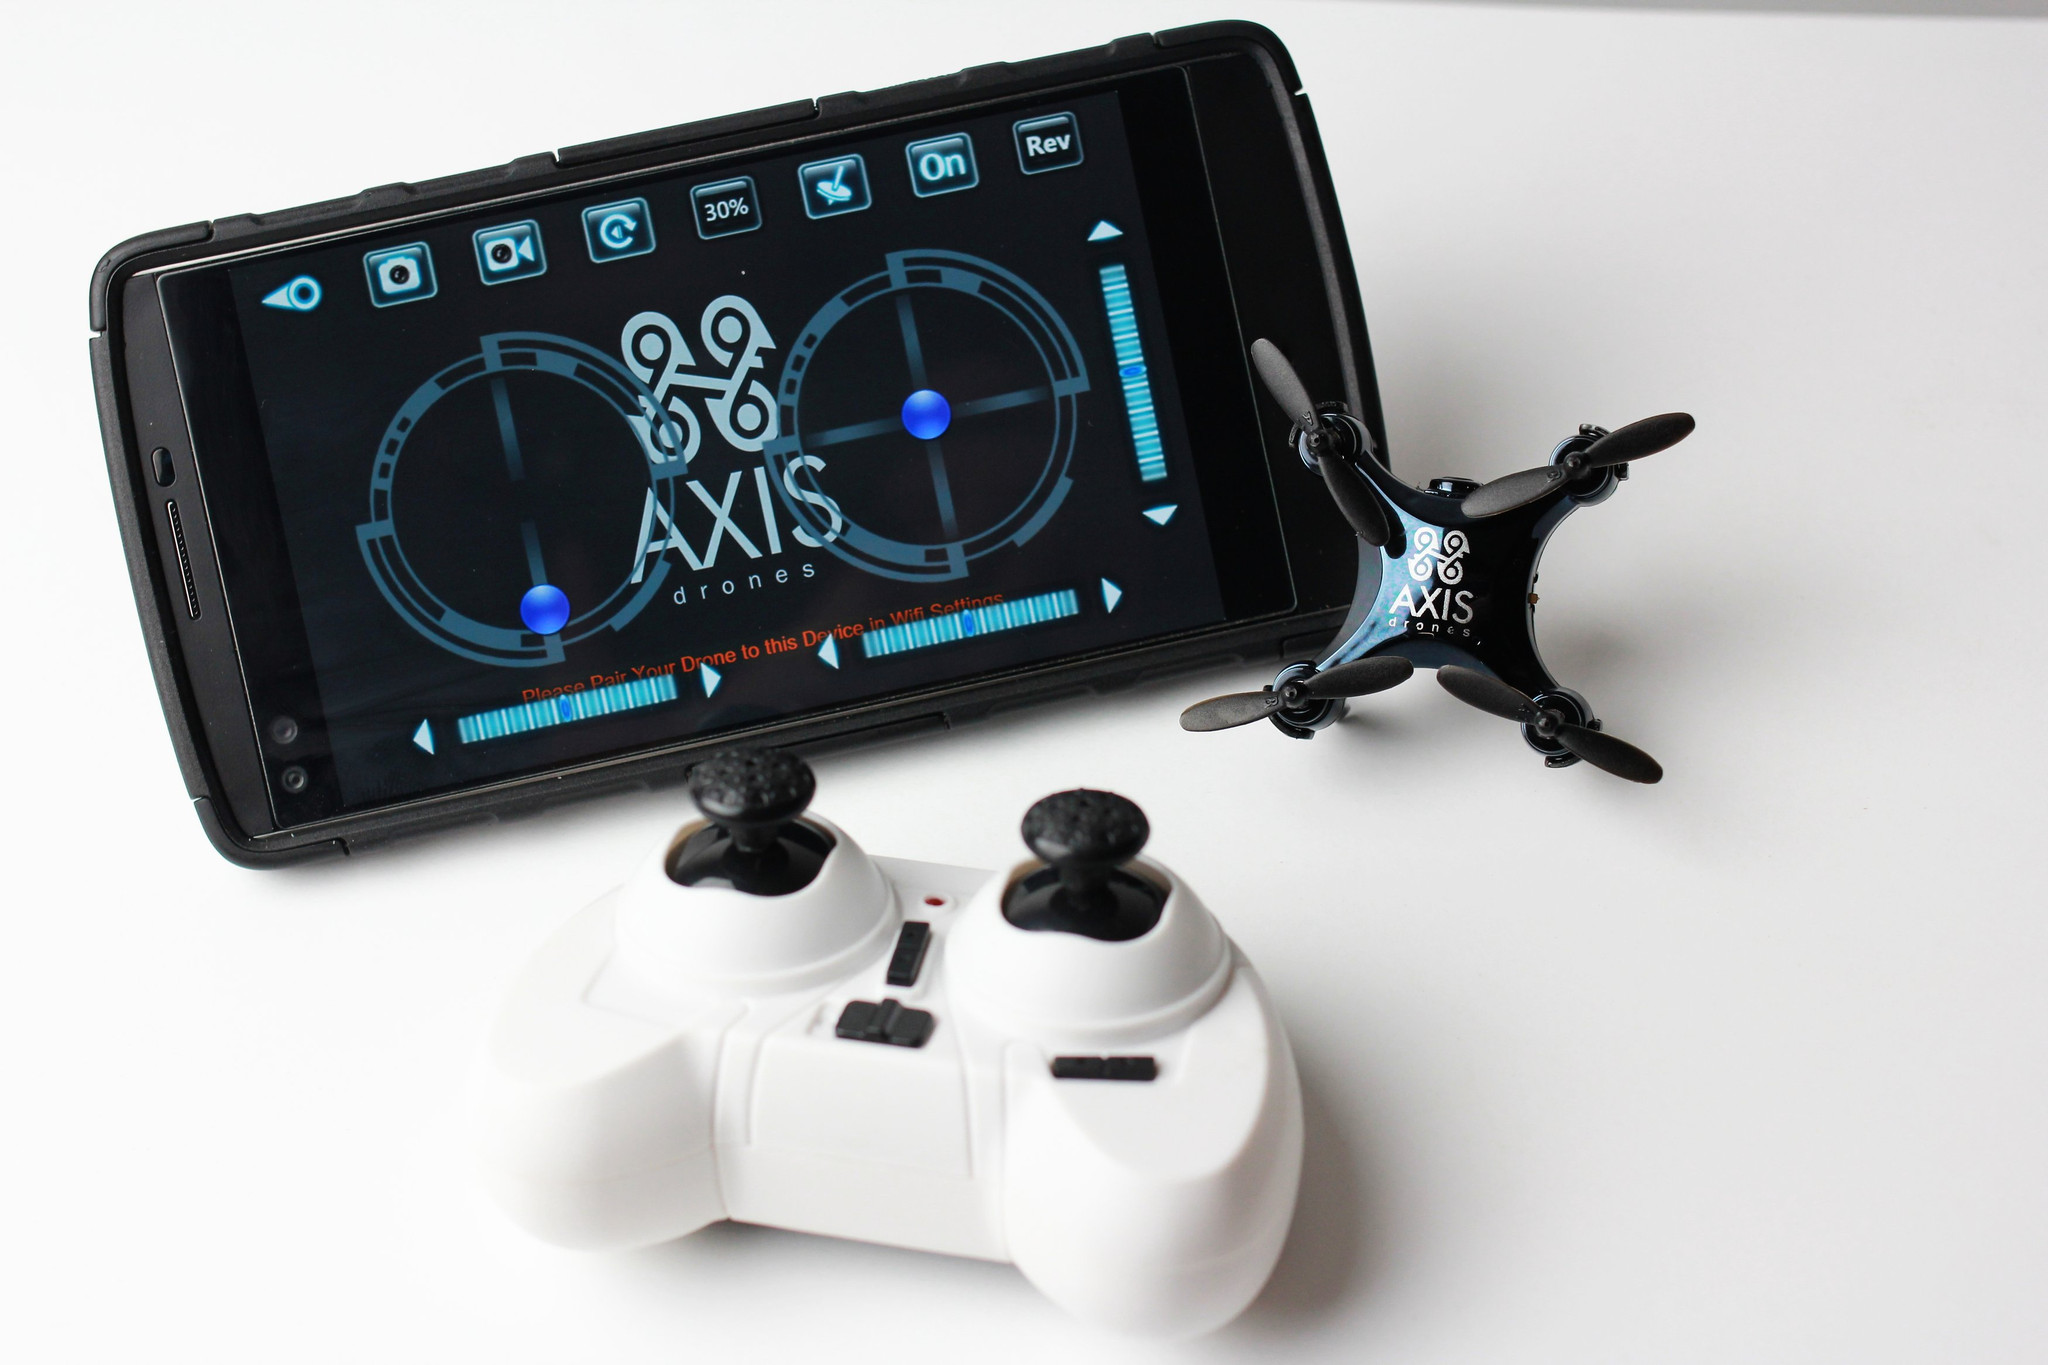 ar drone 2 controller with Axis Vidius Is The Worlds Smallest Camera Drone on Ancient Glass Medallion Ship Image Byzantine 400 600 Ad likewise Axis Vidius Is The Worlds Smallest Camera Drone together with Uav Electronics together with Spracing F3 Evo Fc Setup Tutorial additionally Parrot Ar Drone 2 0 Unveiled Video 09 01 2012.